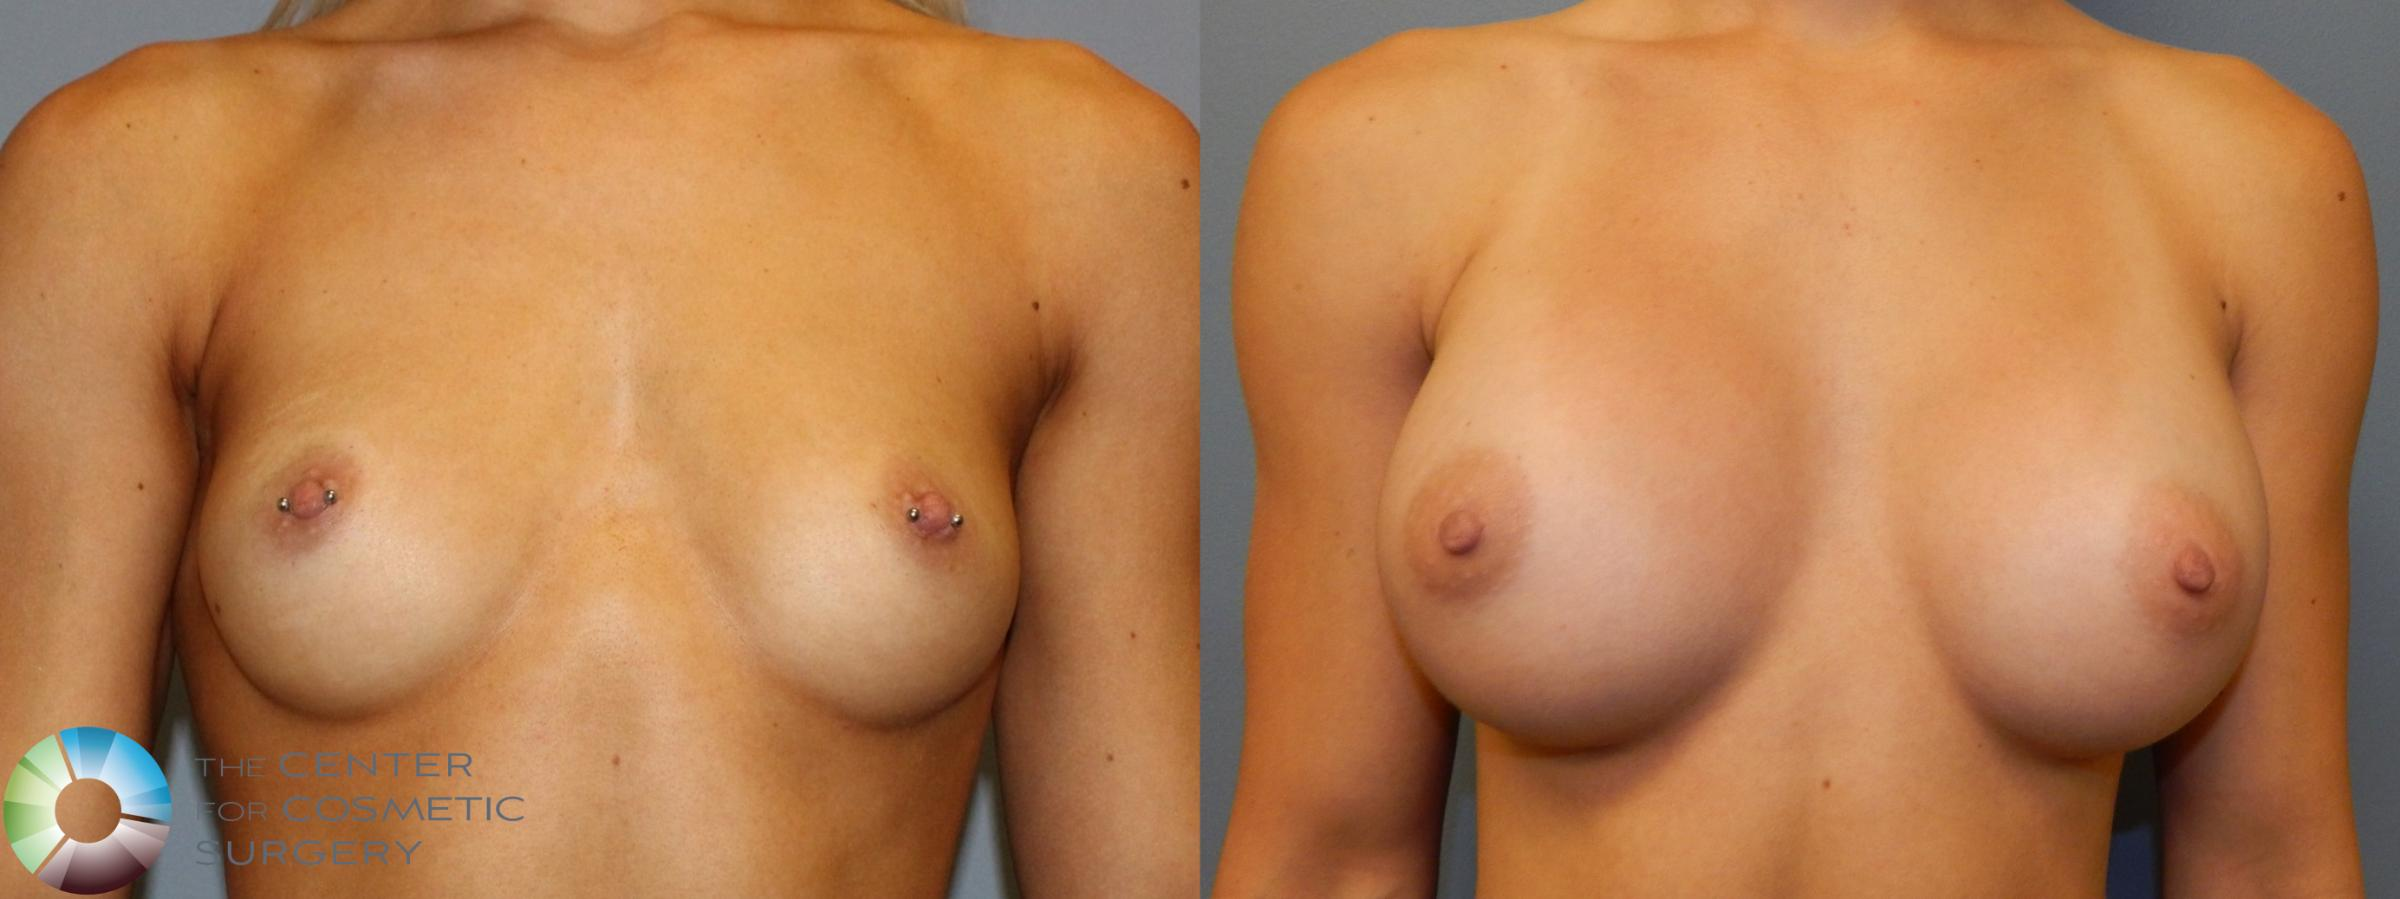 Breast Augmentation Case 860 Before & After View #1 | Golden, CO | The Center for Cosmetic Surgery